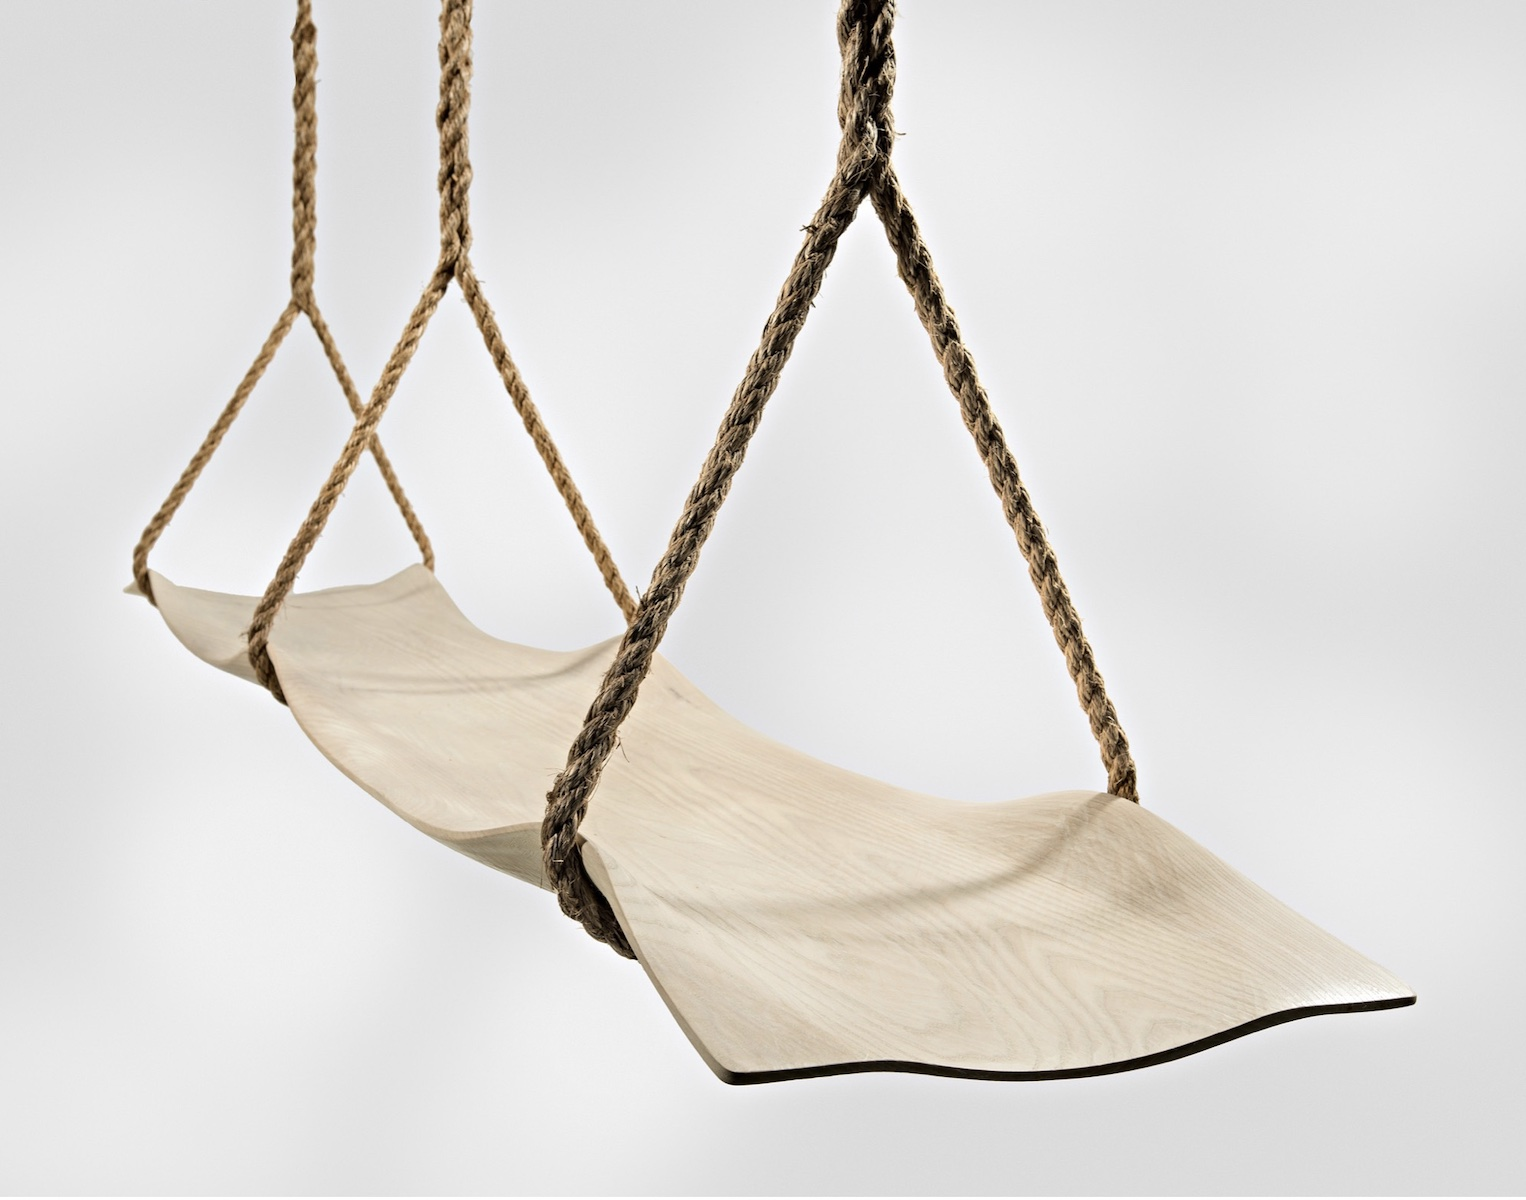 angled view of the double Swing Seat by artist Christopher Kurtz